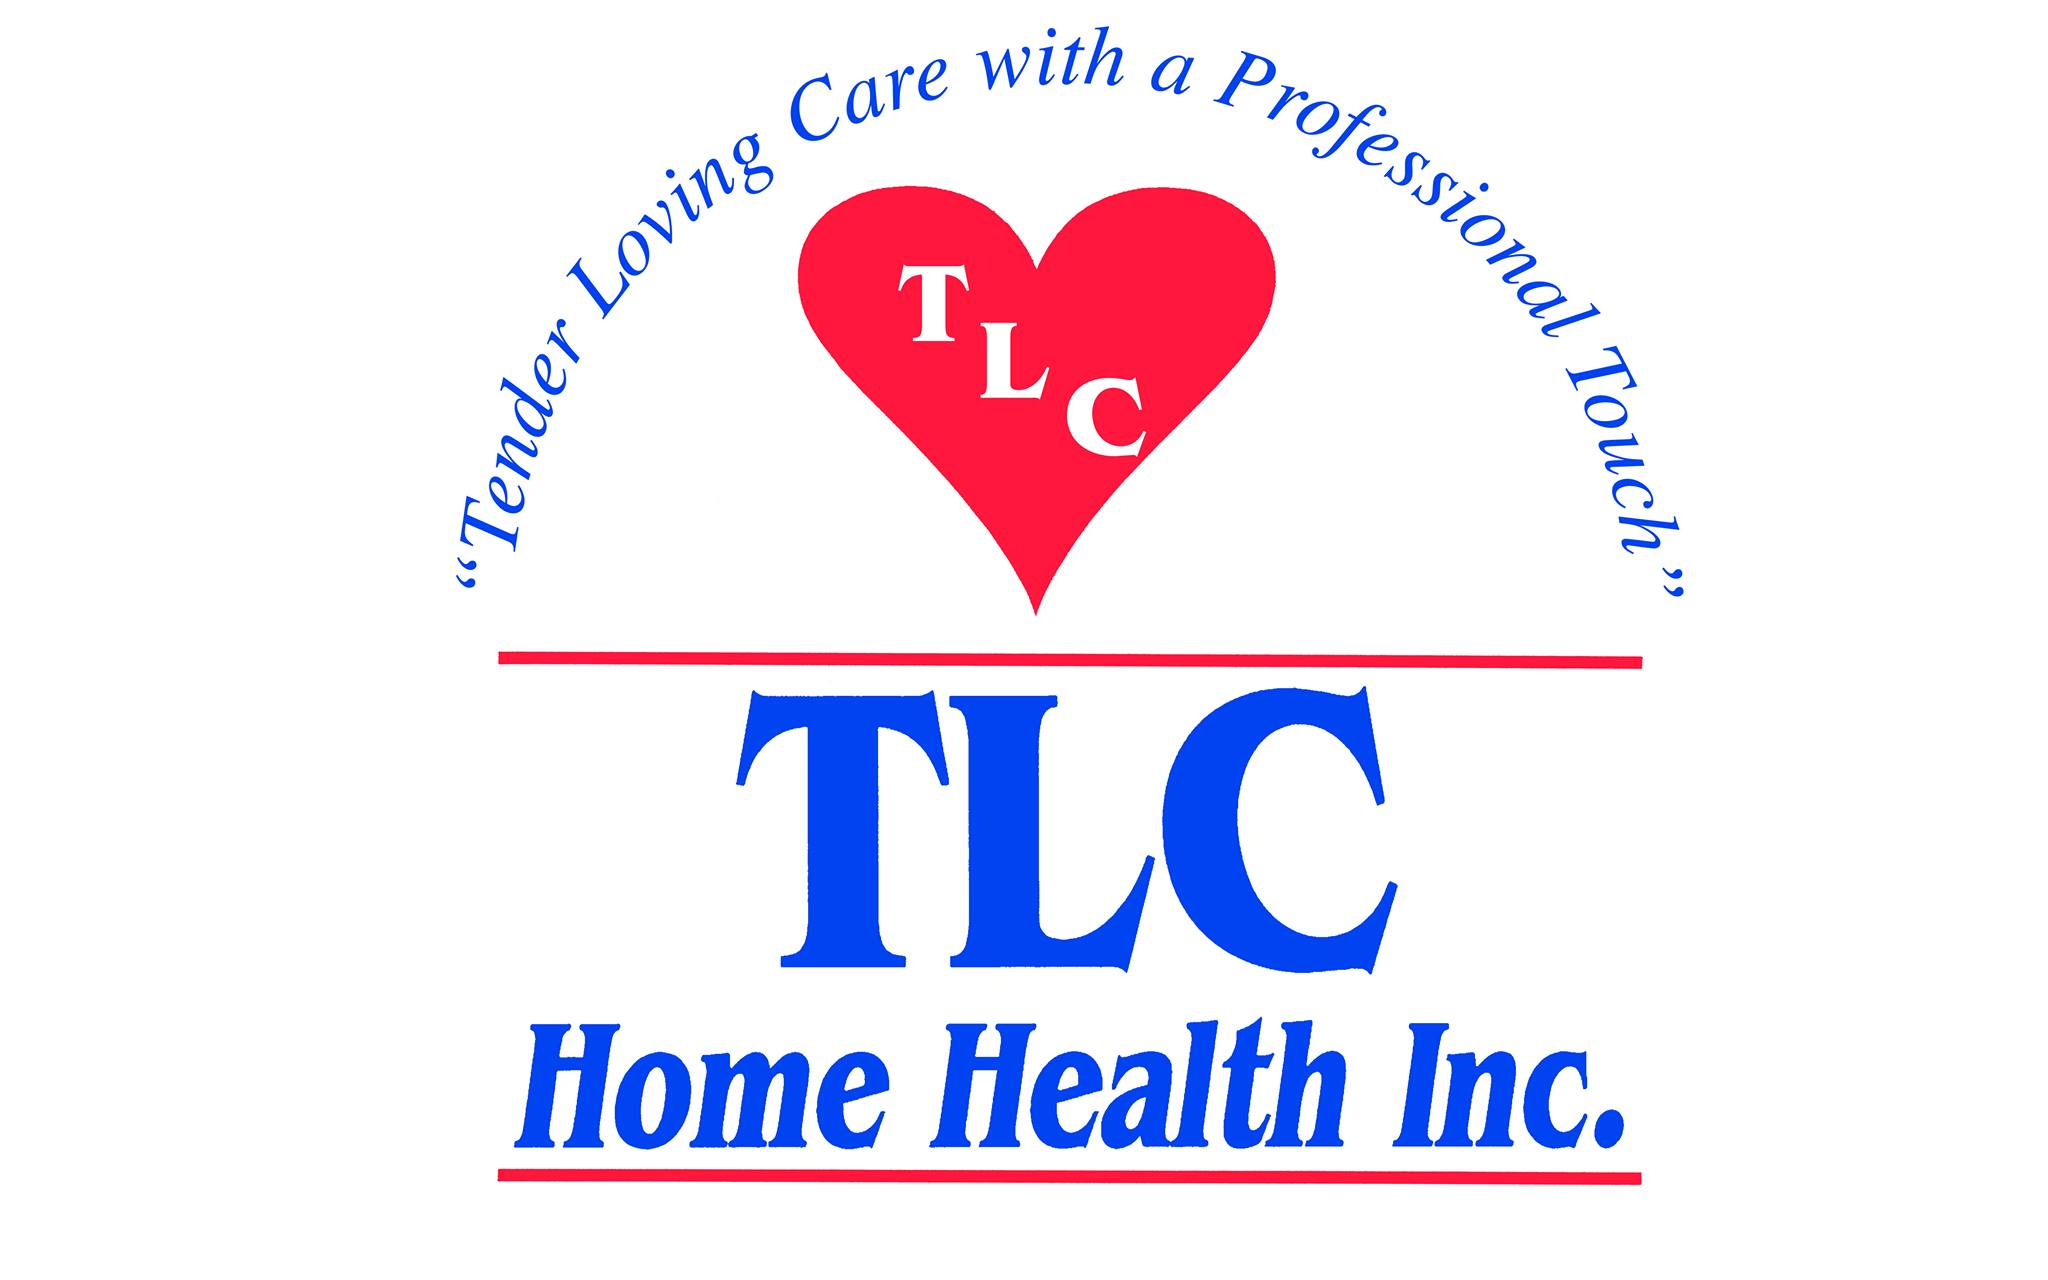 TLC Home Health, Inc. Wins Eighth Consecutive Talk Award For Customer Satisfaction